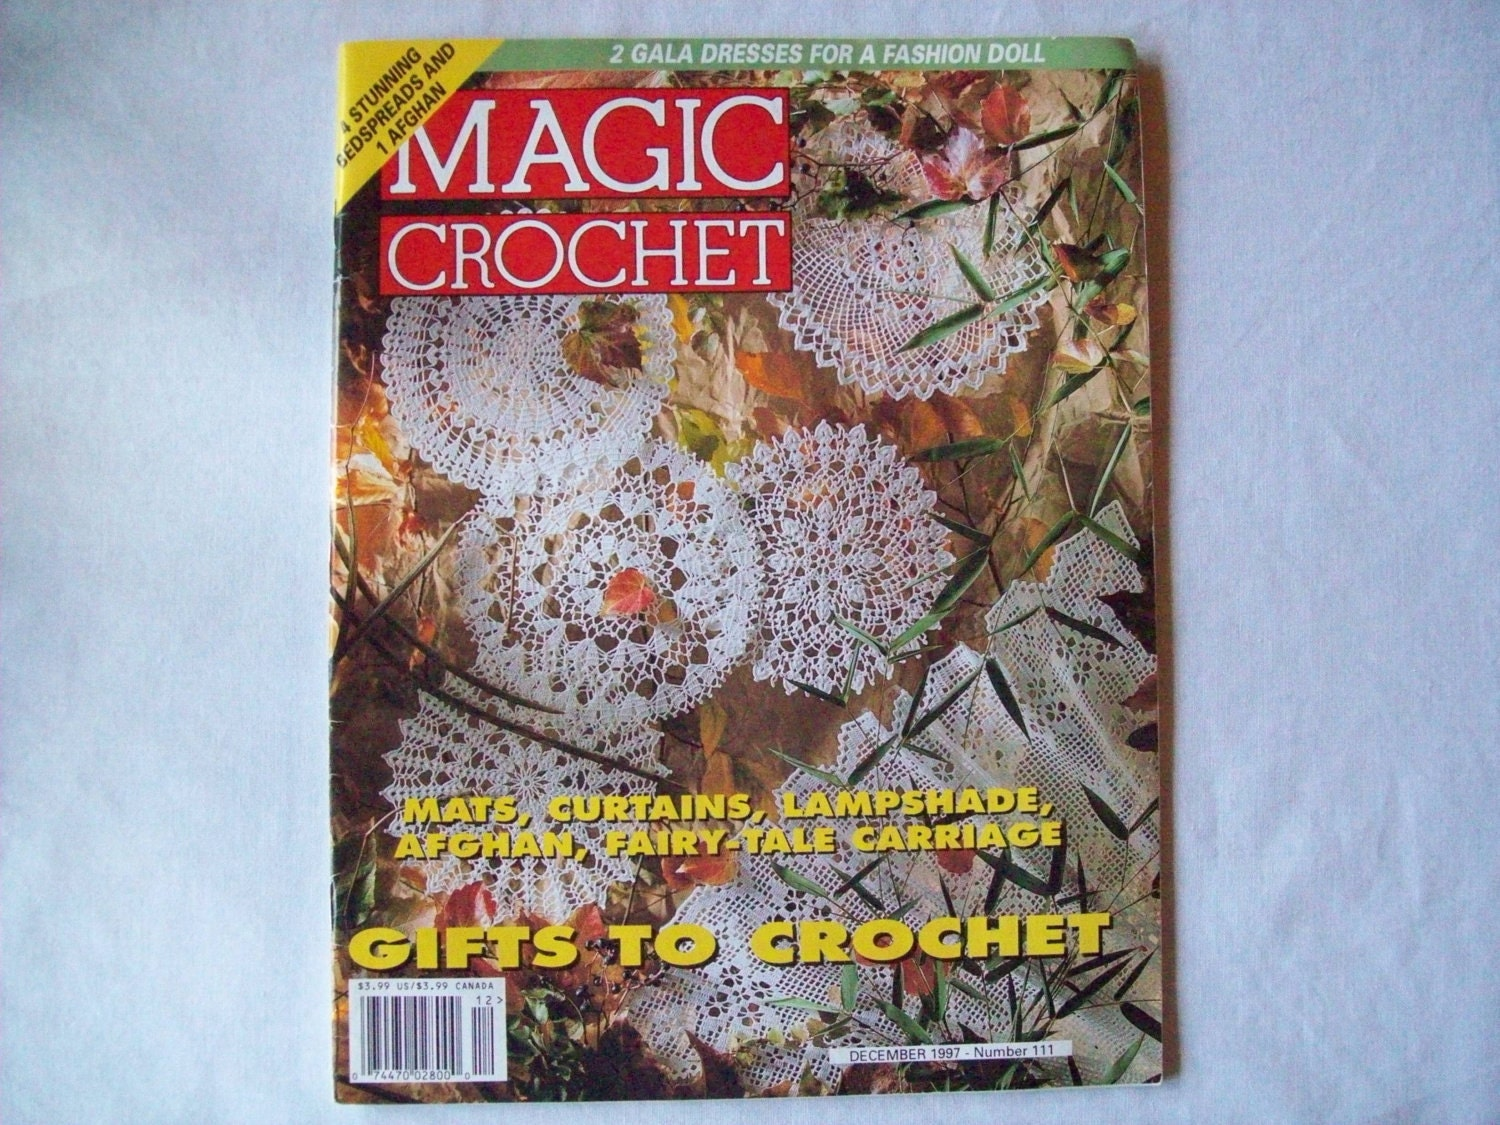 Magic Crochet Magazine : Magic Crochet Magazine December 1997 issue 111 by CozyHomeCrochet